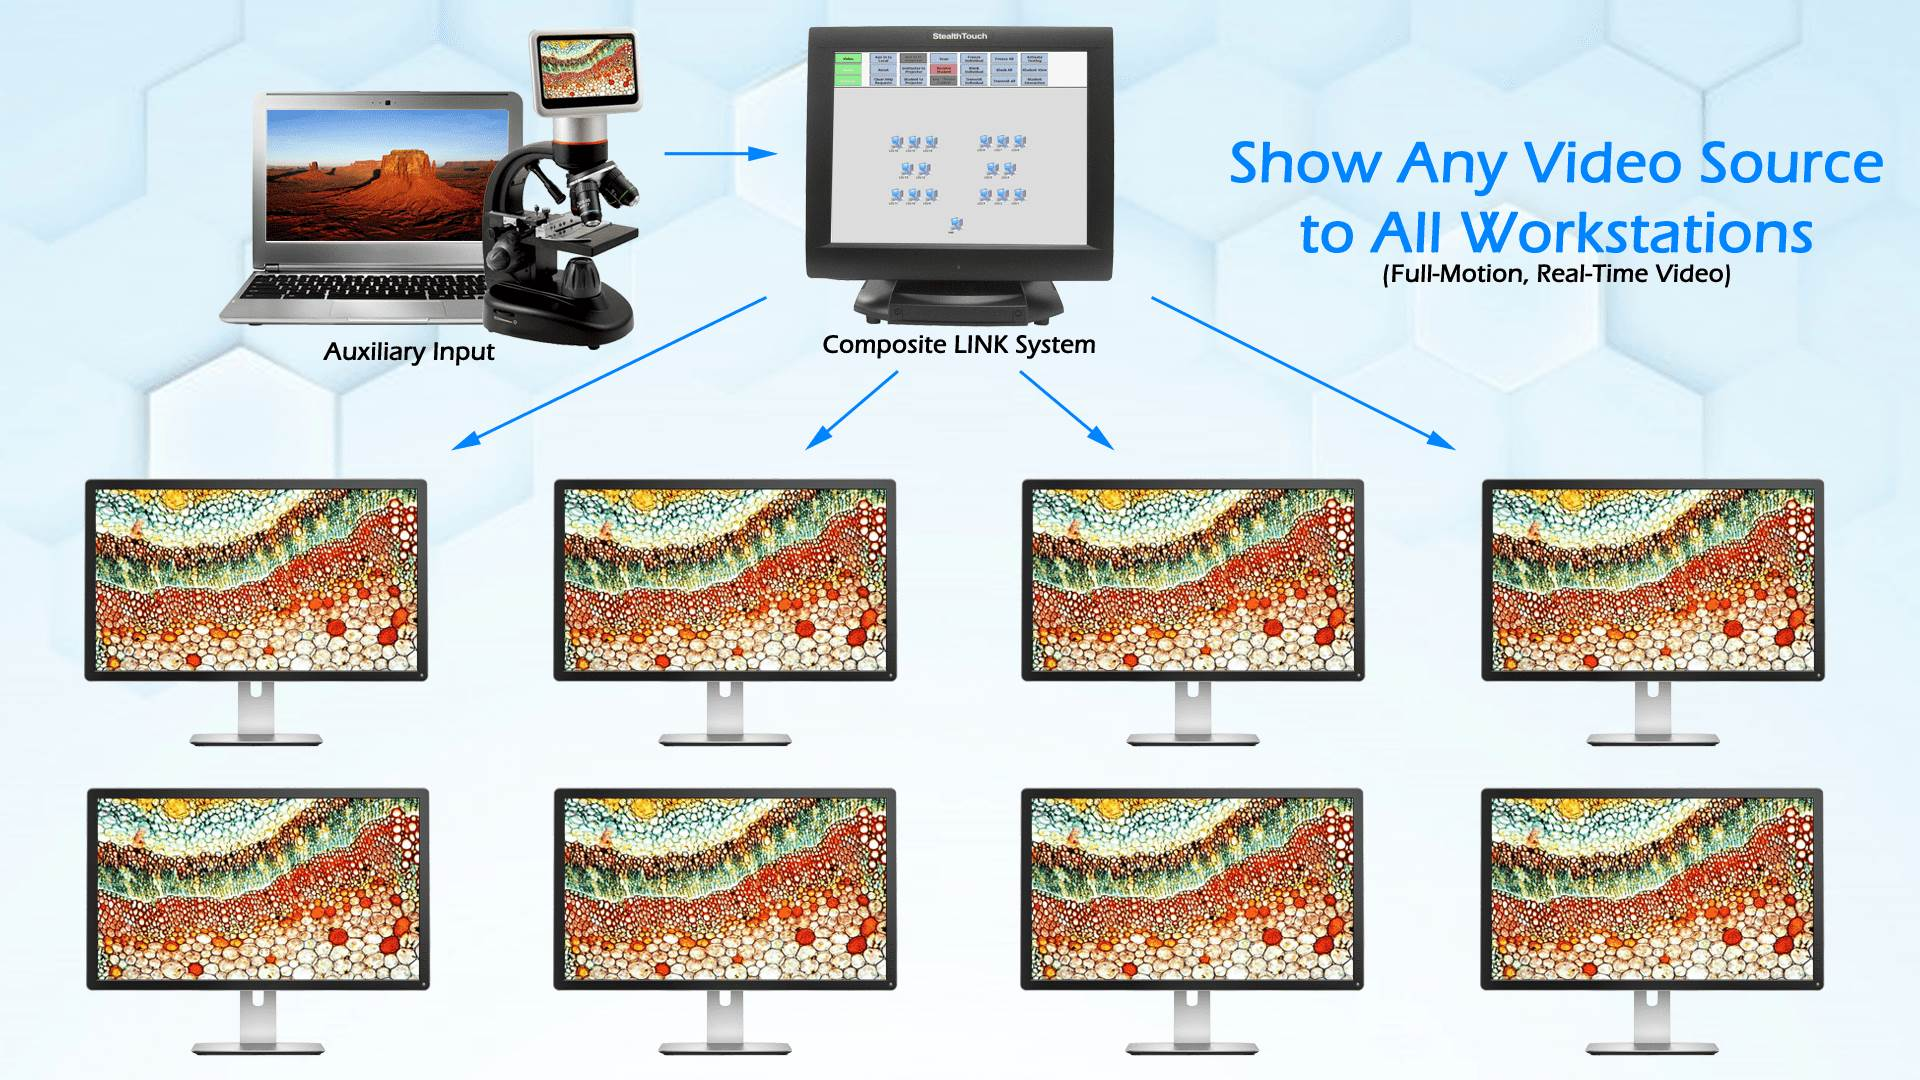 Broadcast Any Video Source to Student Workstations